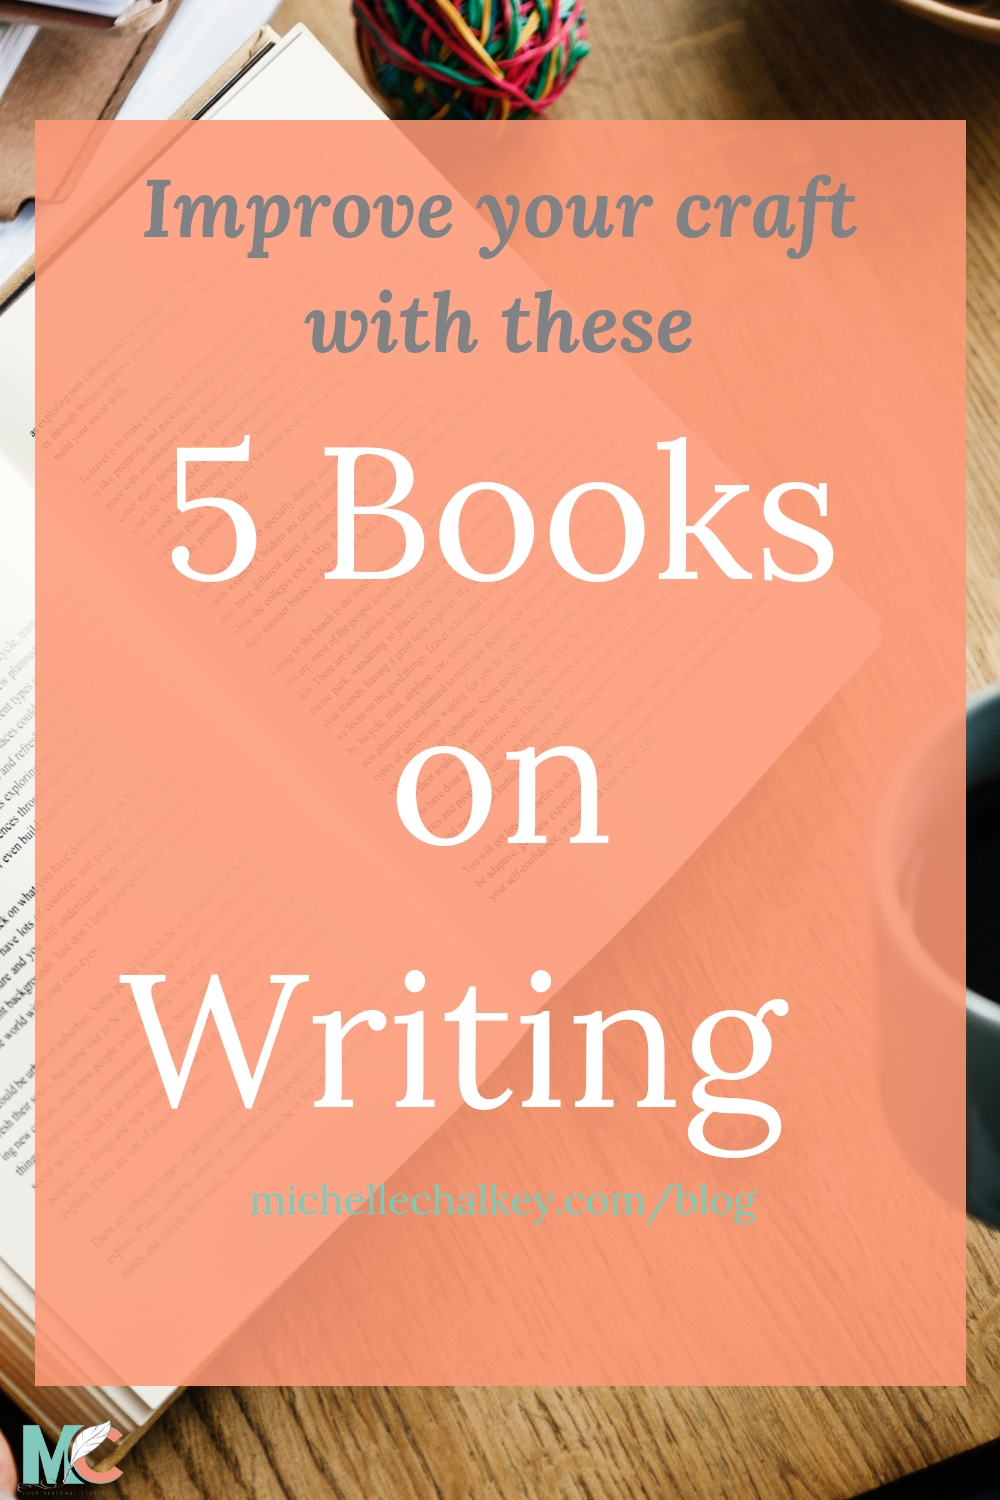 Improve your craft with these 5 books on writing.